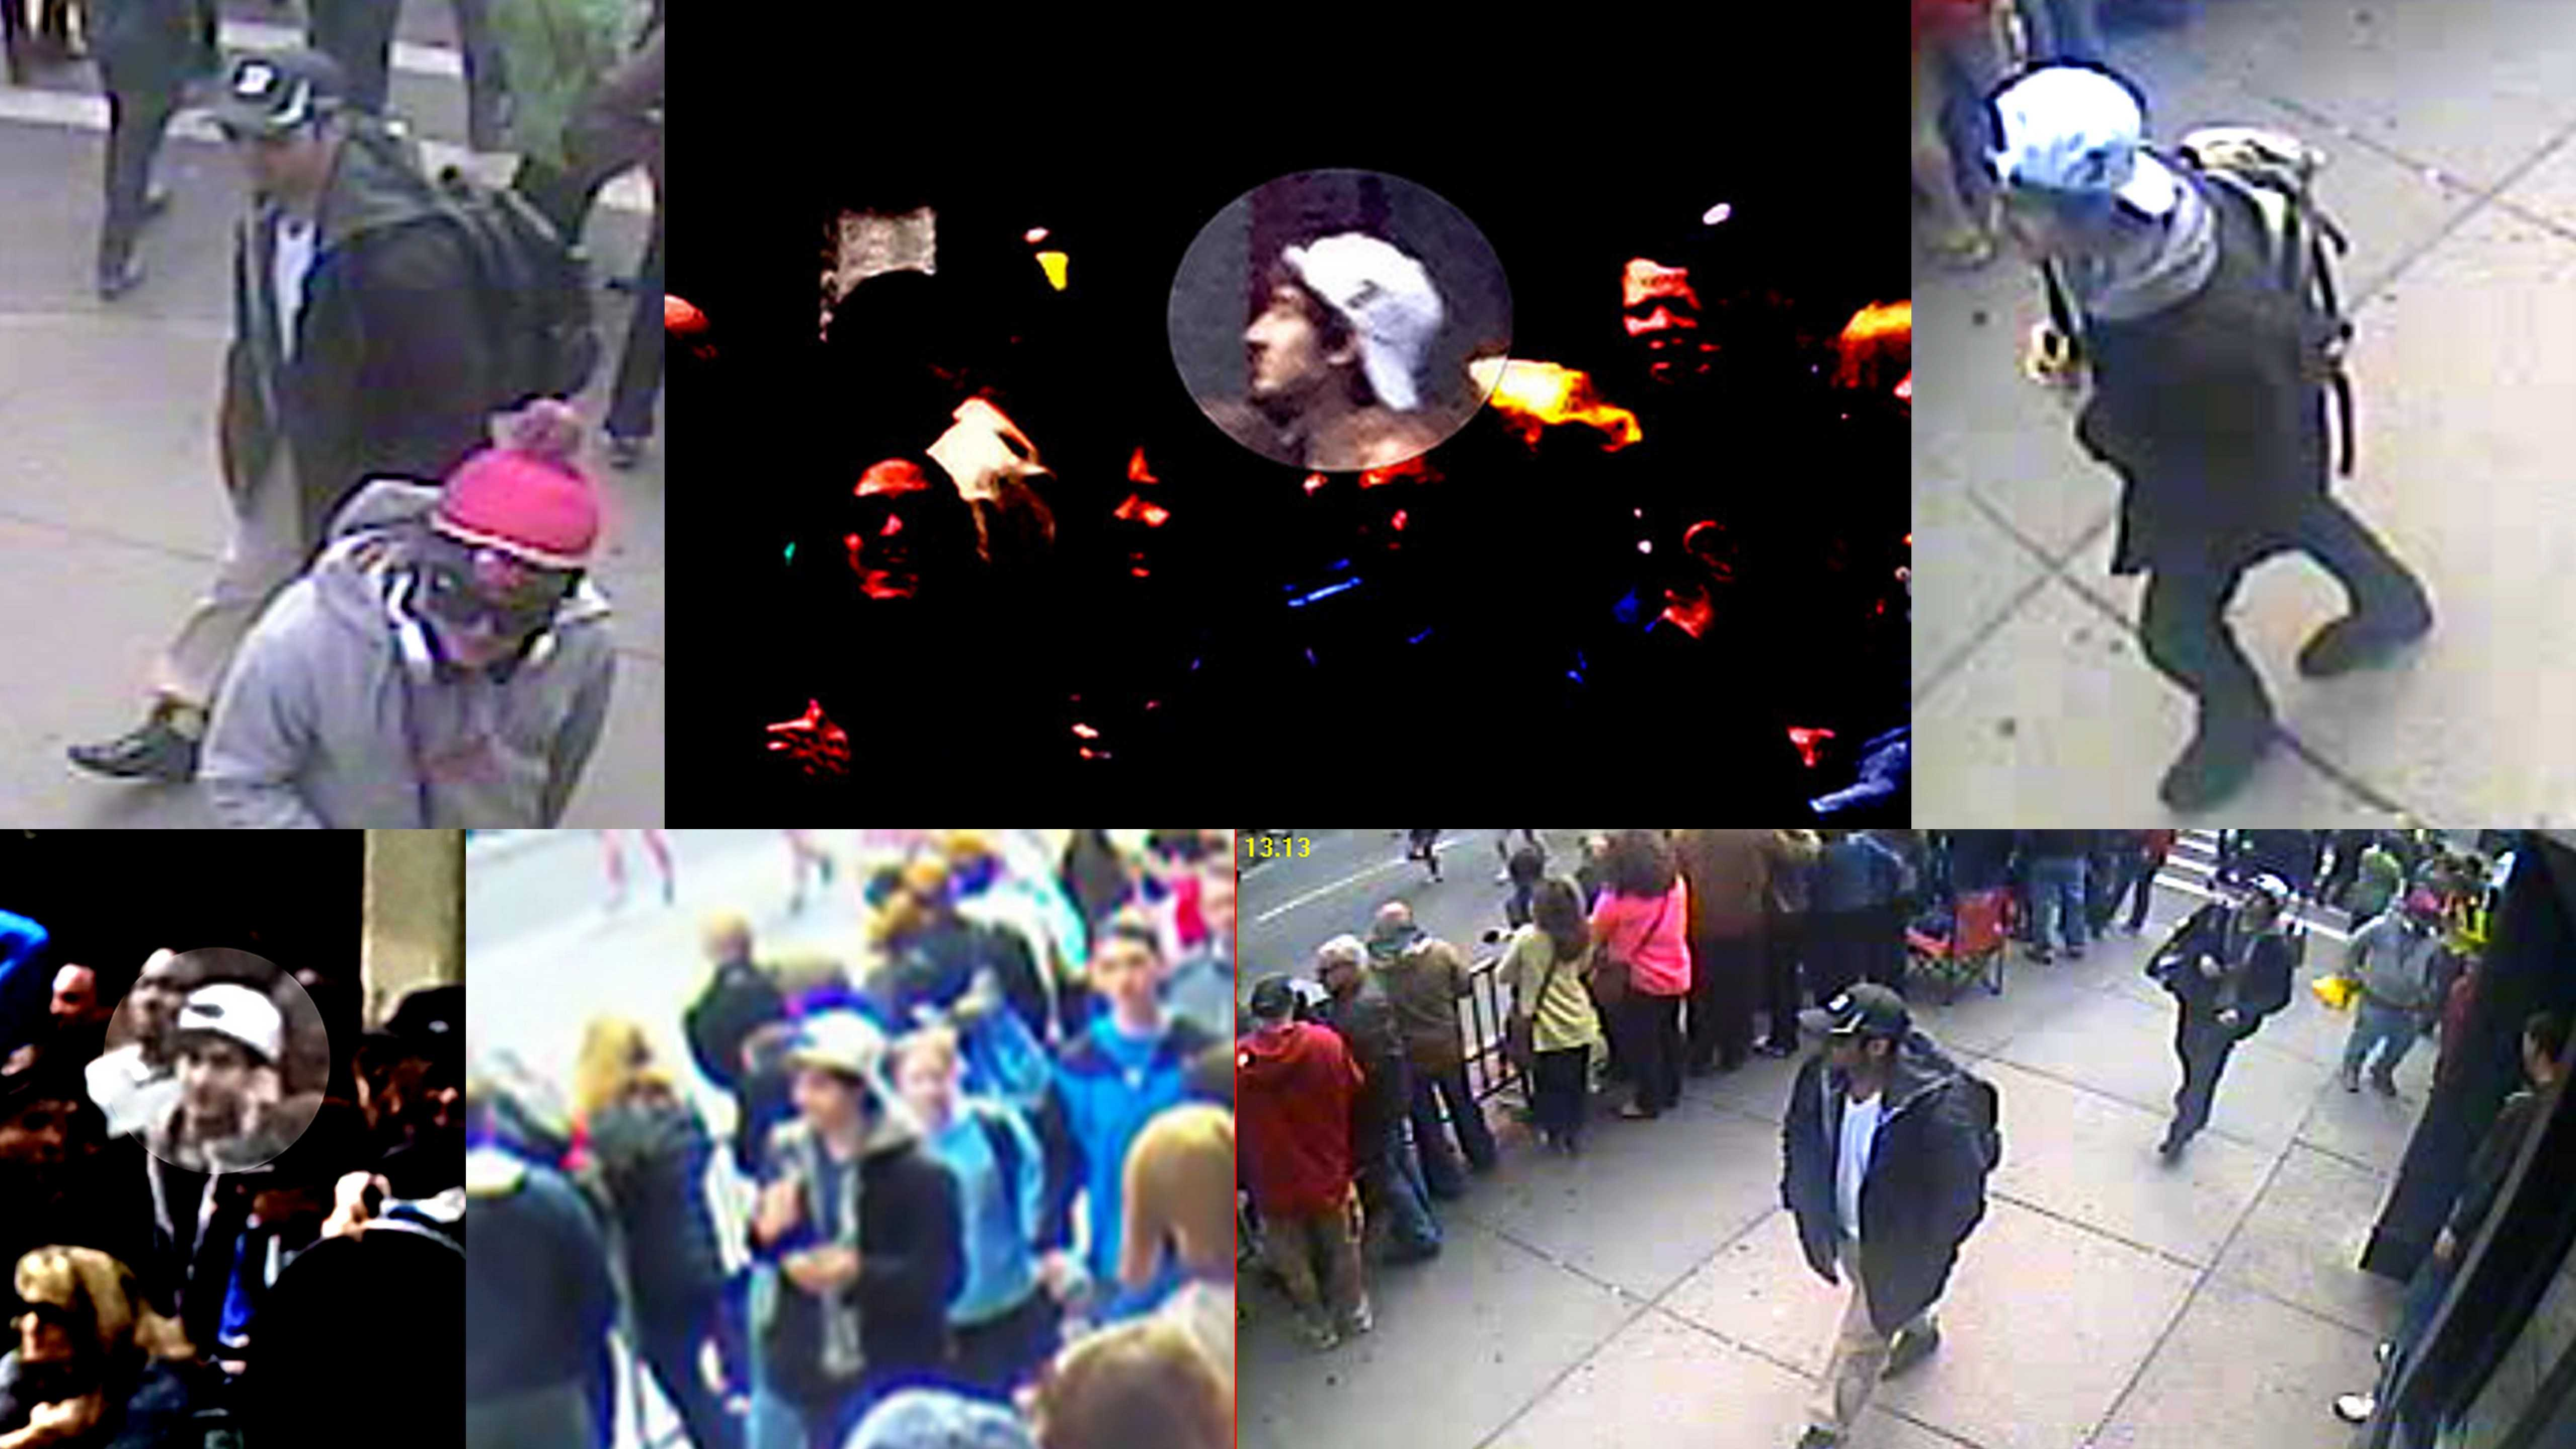 The FBI released photos and videos of two suspects in connection with the Boston Marathon bombings.